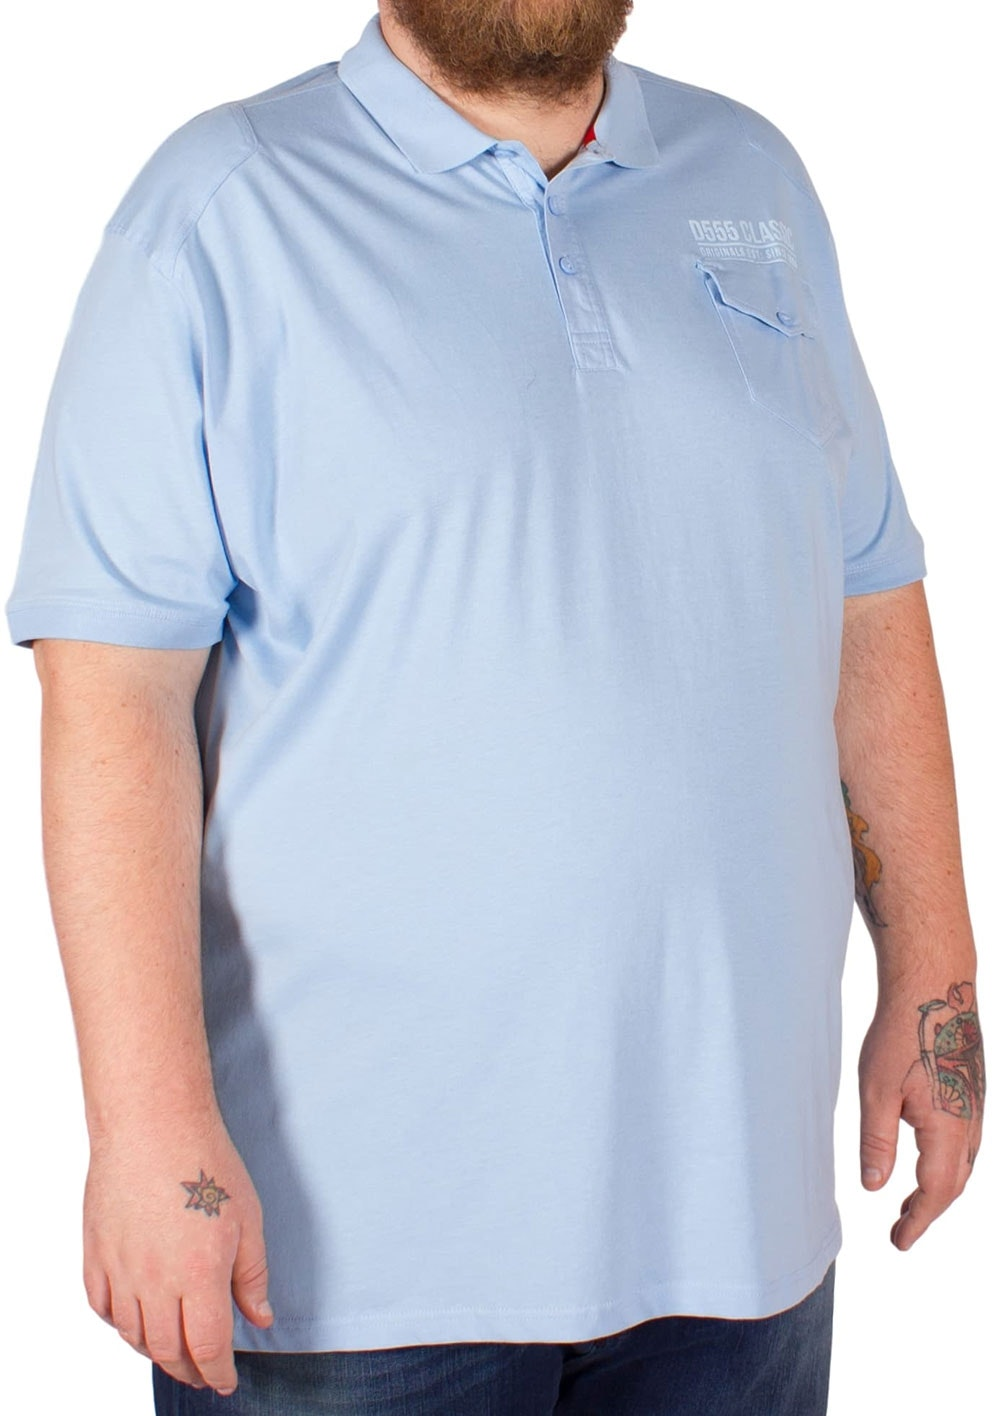 D555 Dallin Shoulder Patch Polo Shirt Blue